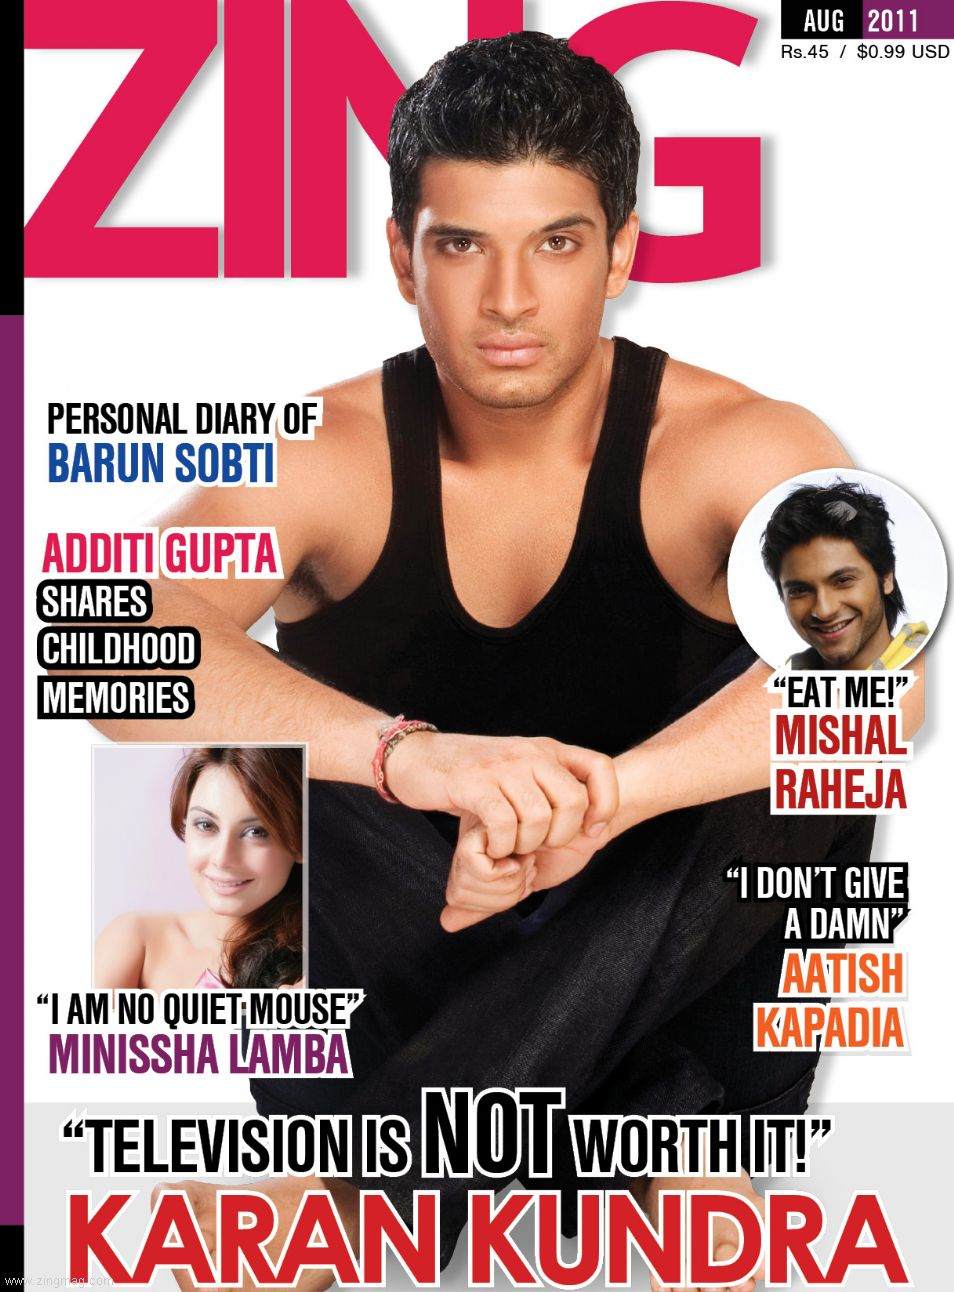 Zing Issue August 2011 Coverpage - Karan Kundra